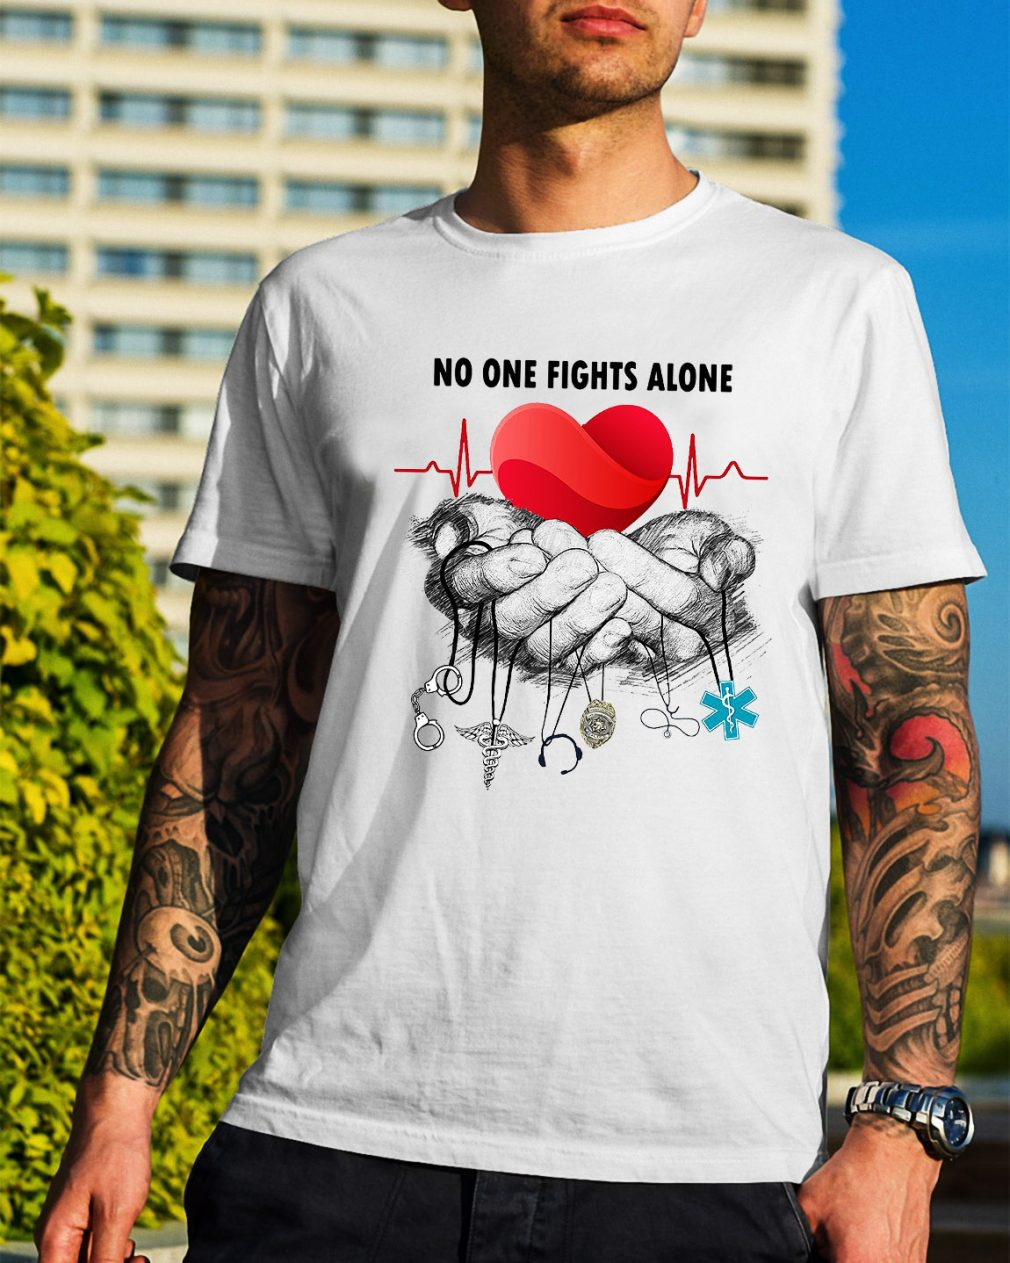 Nurse Police Firefighter Military Ems no one fights alone shirt